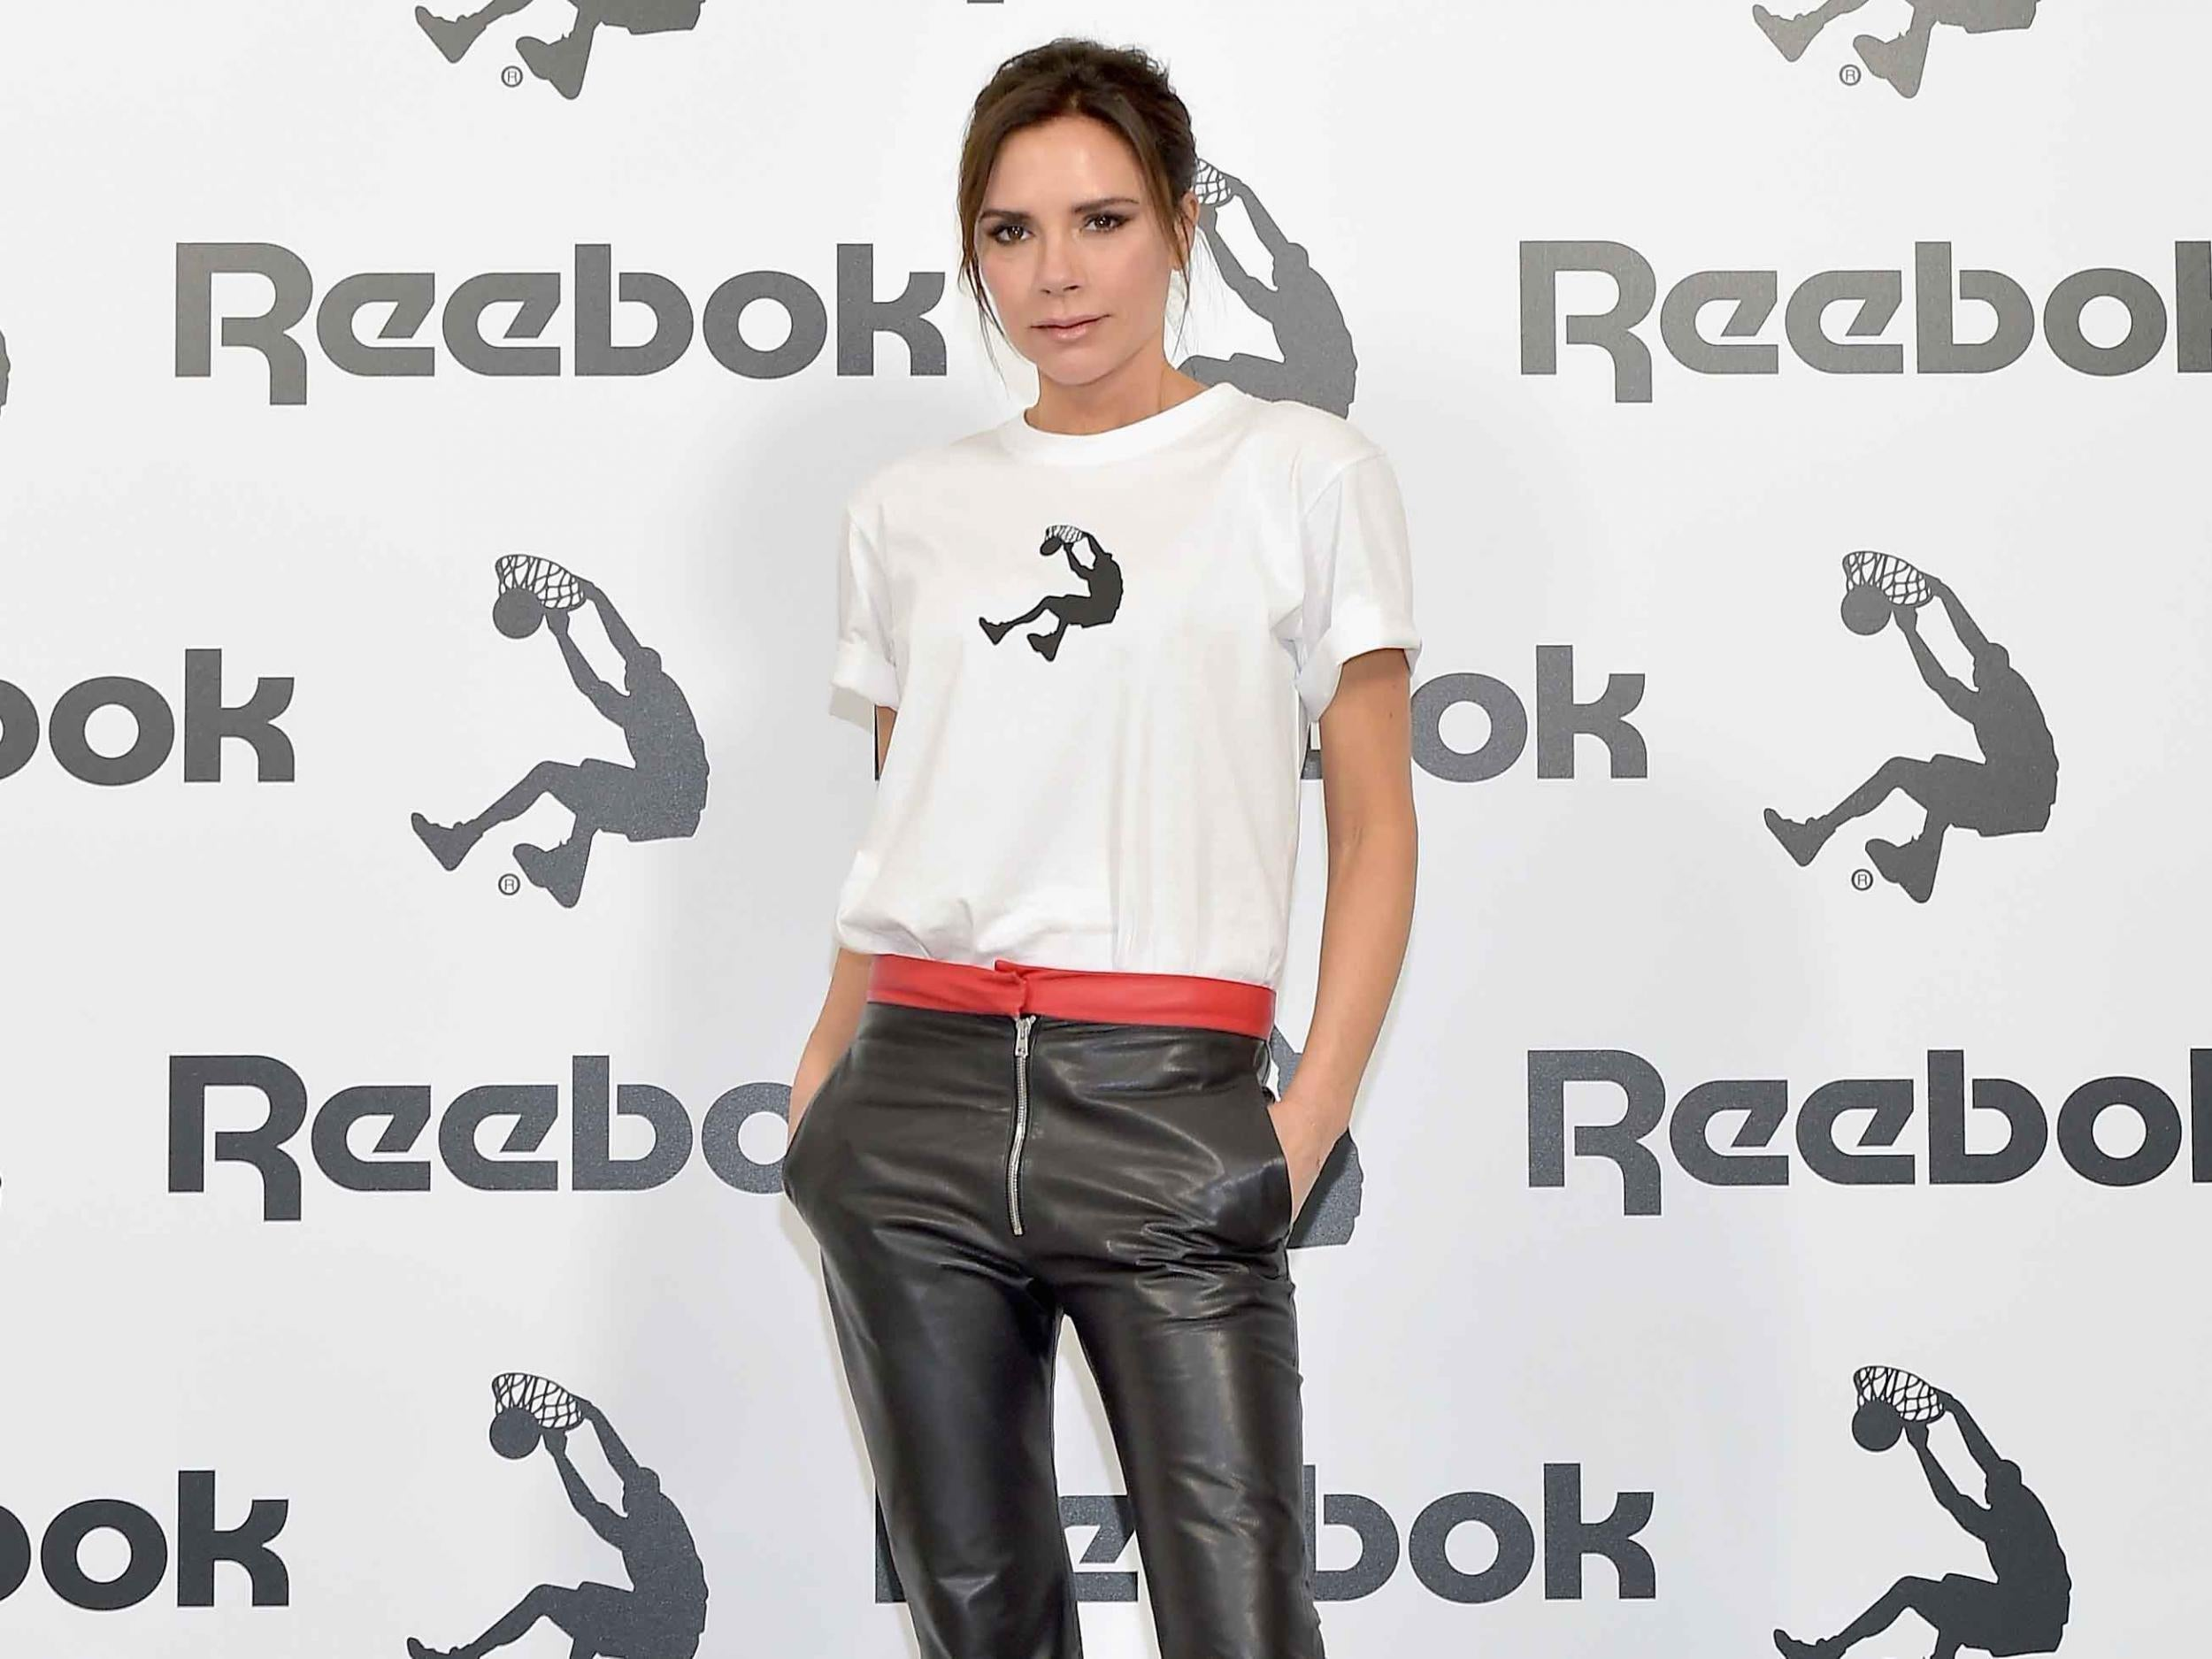 ce2012de03 Everything we know about the Victoria Beckham x Reebok collection ...